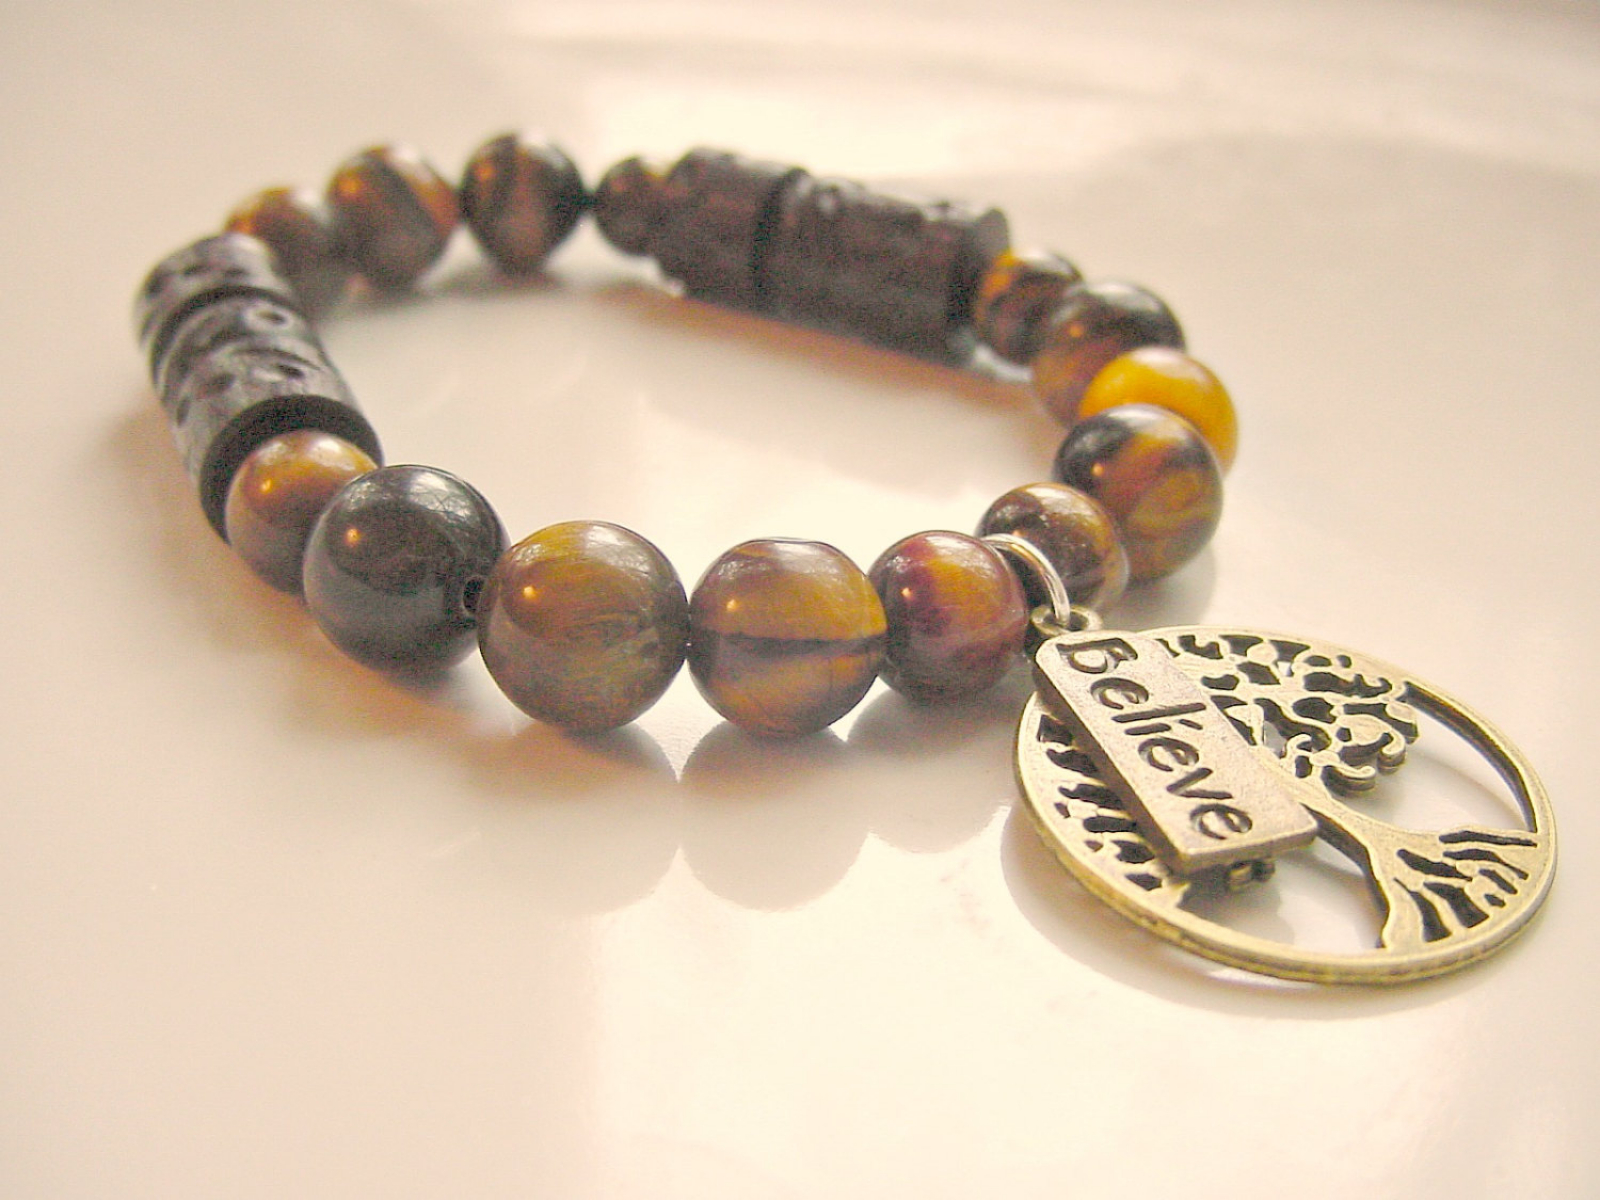 product of courage morse bracelet blanco mb image code guy